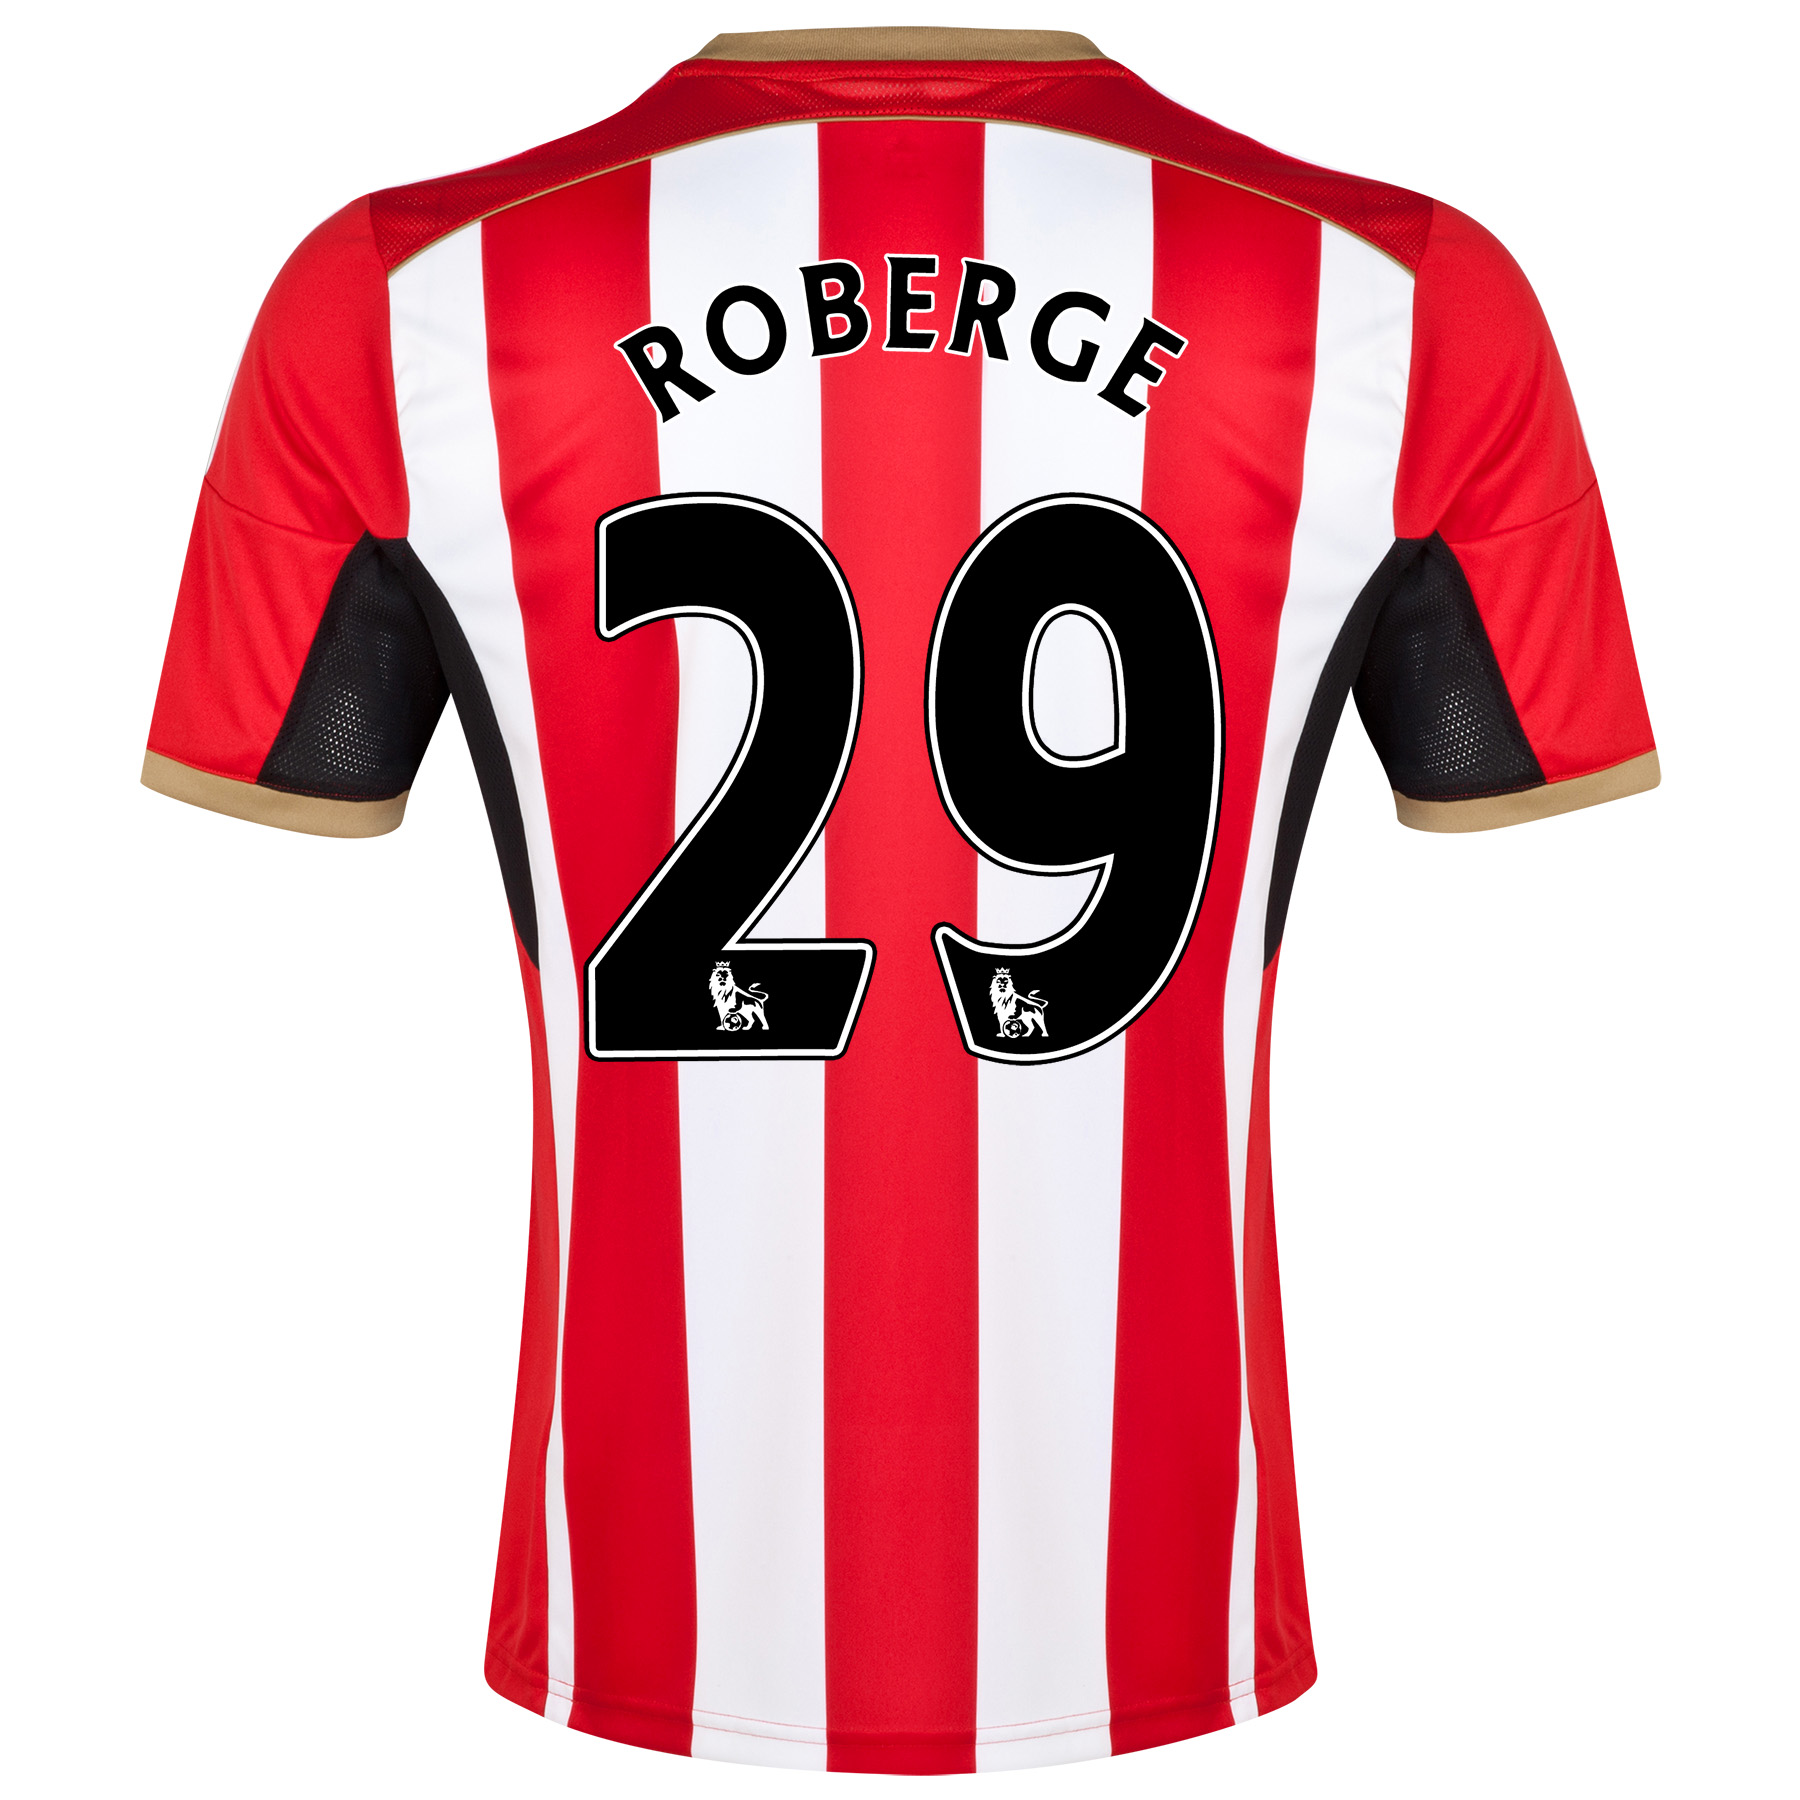 Sunderland Home Shirt 2014/15 - Junior Red with Roberge 29 printing